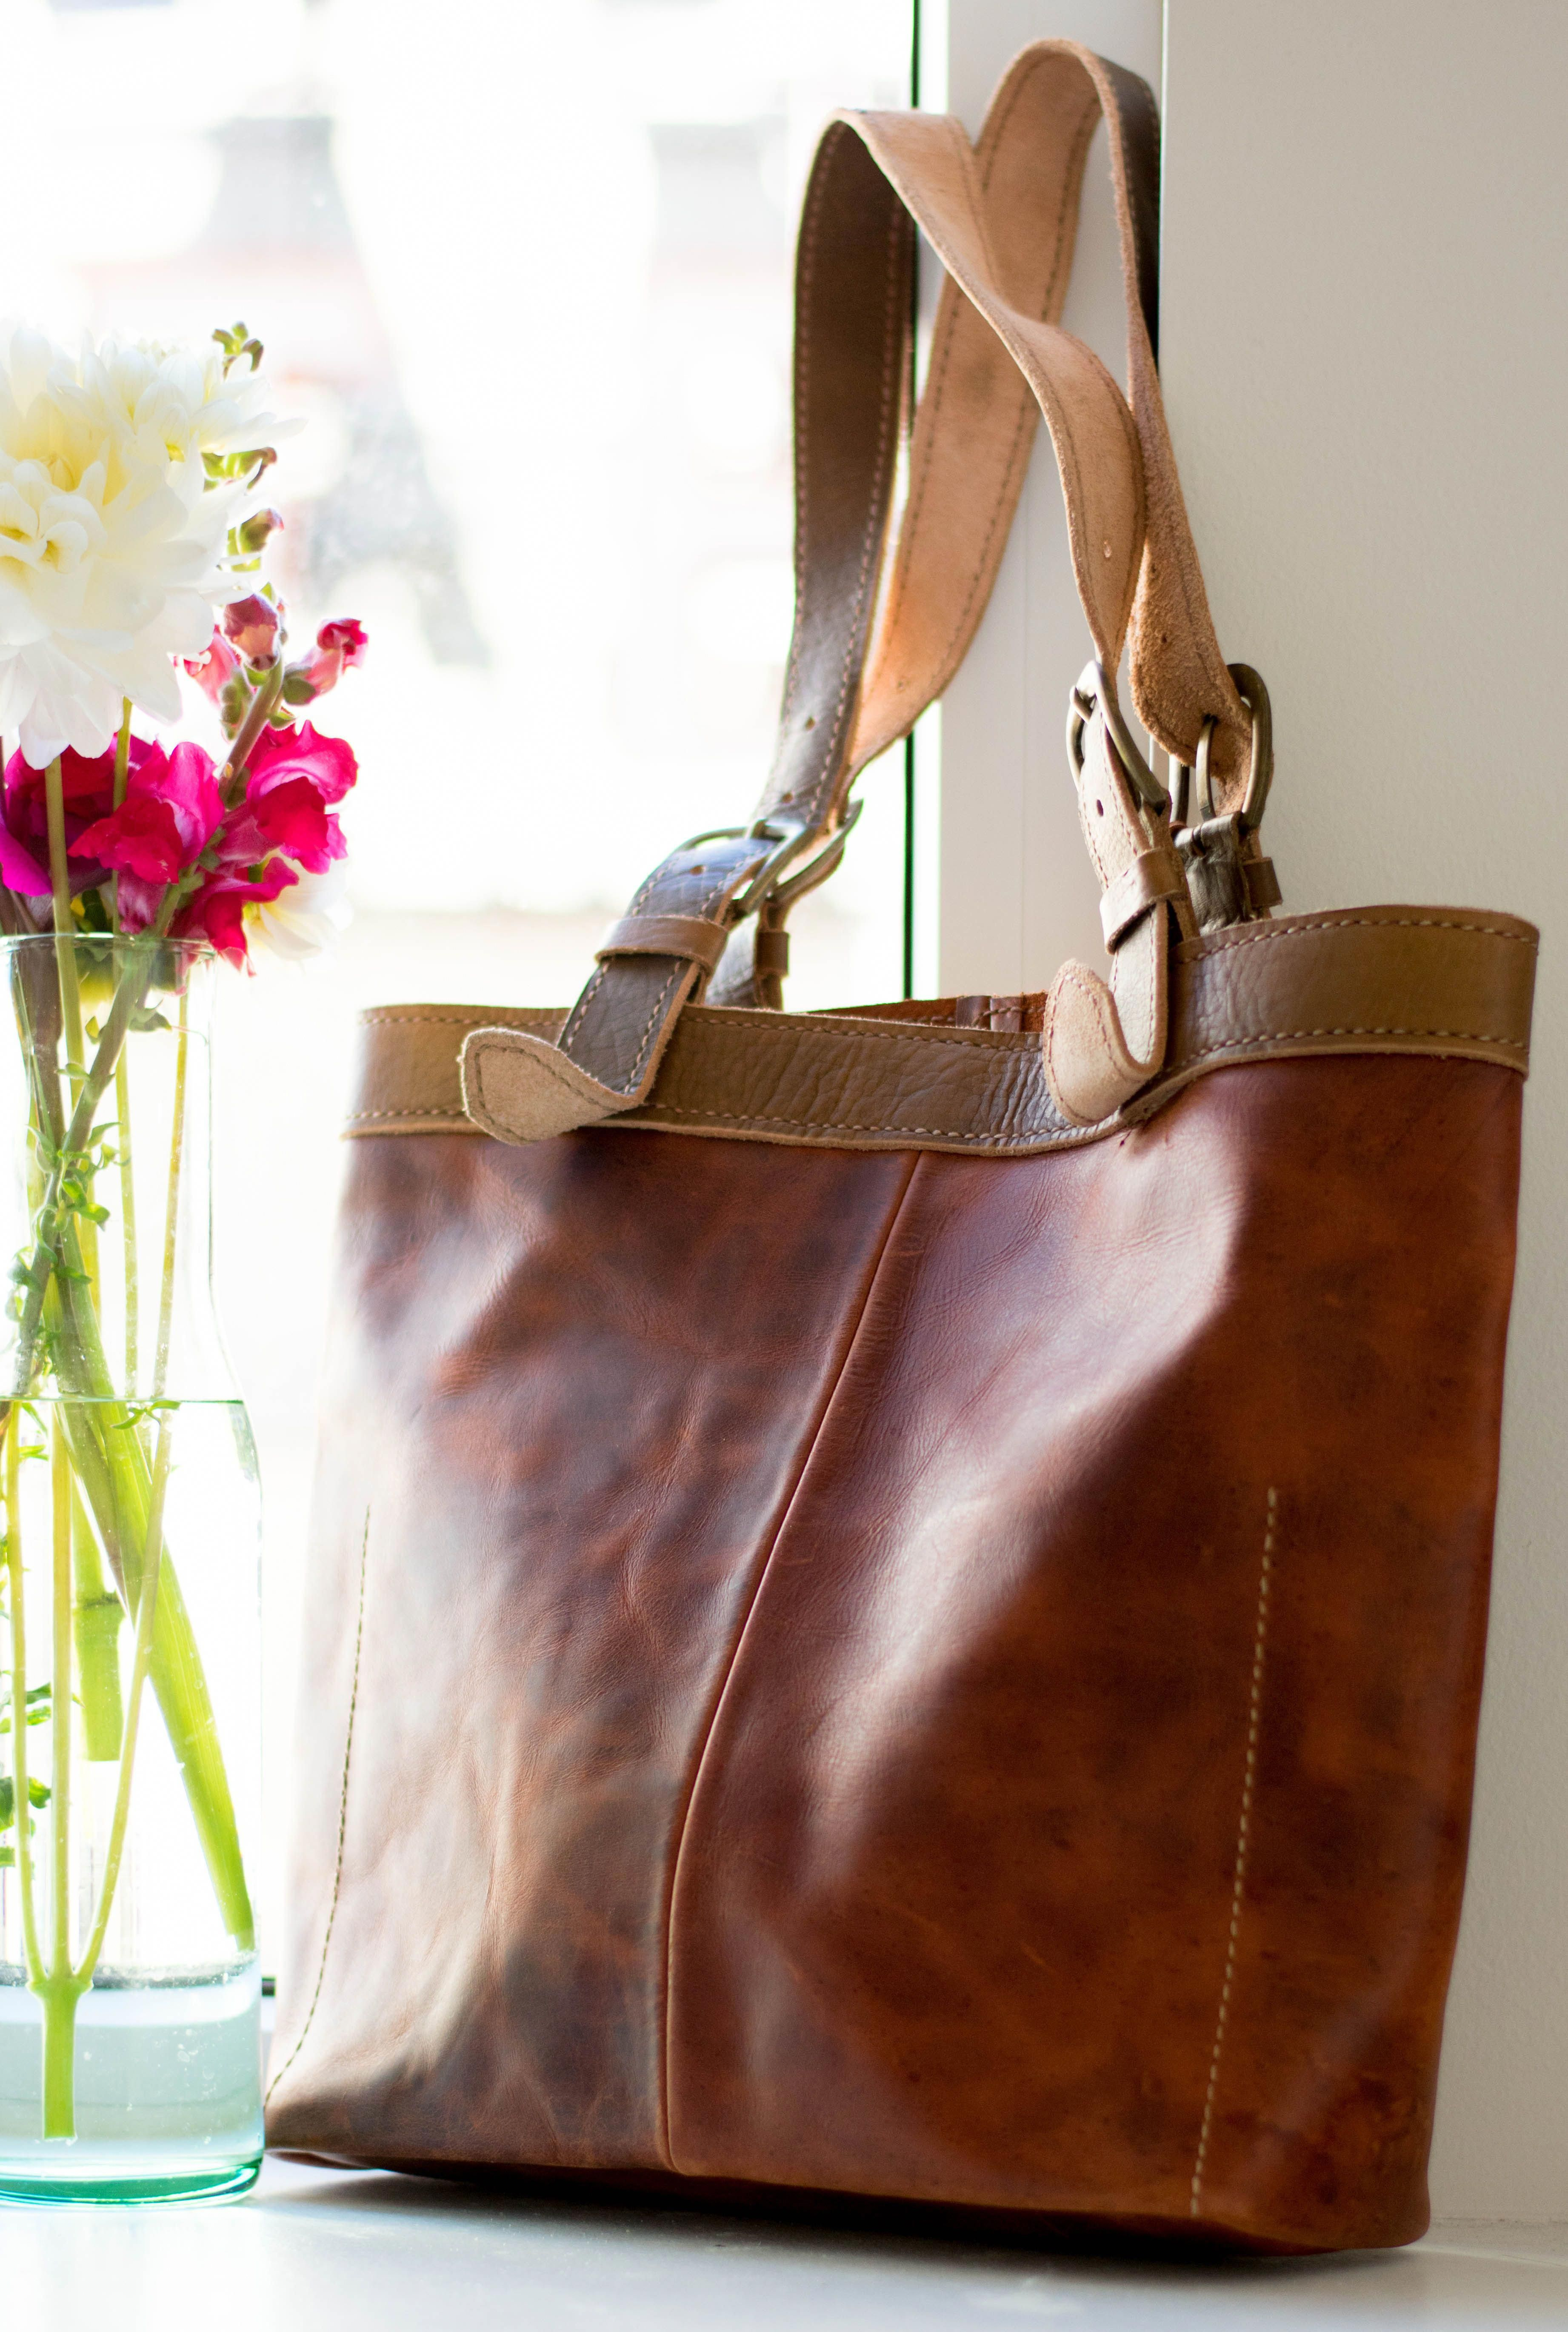 This beautiful leather tote bag is ethically made and provides sustainable employment opportunities to developing communities in Haiti  Honduras Wear this bag with a purp...